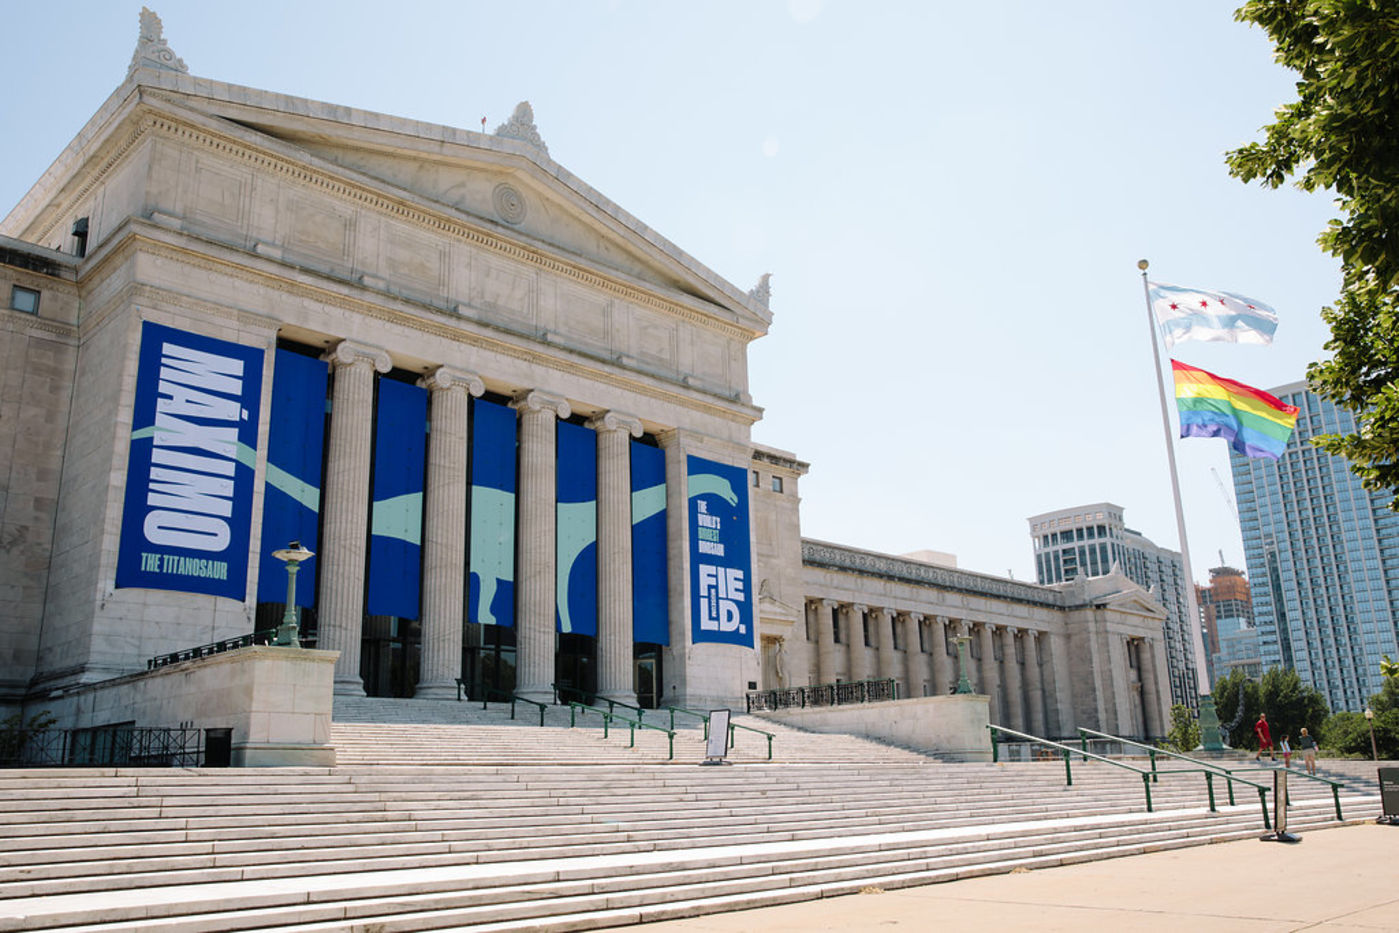 View of the north facade of the Field Museum with wide stairs leading up to the building entrance. The building is white marble and features a columned entrance and triangular pediment. Large banners advertising Maximo the Titanosaur hang across the facade.